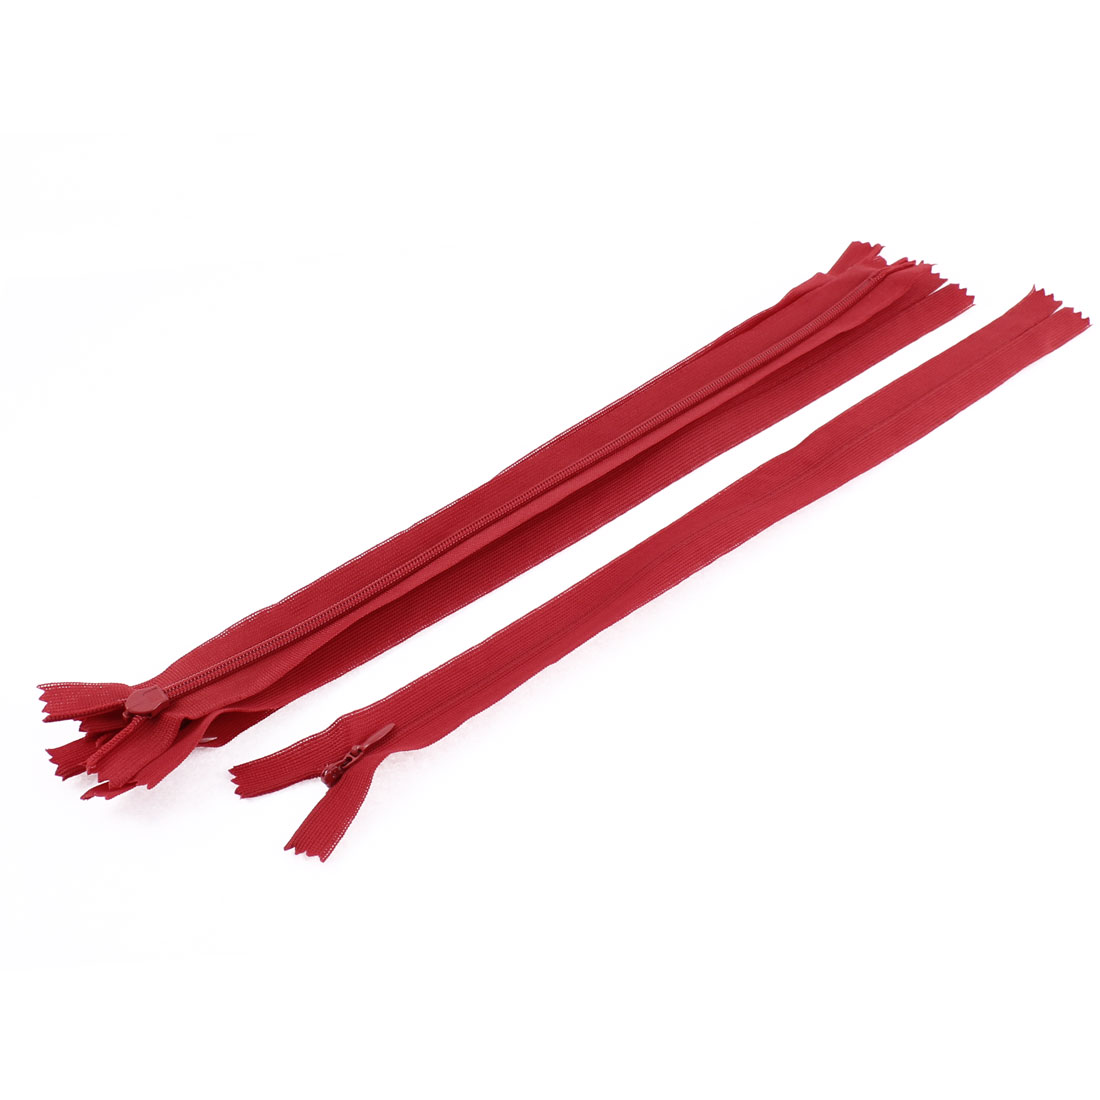 5 Pcs 12-inch Long Red Nylon Zippers Zips for Clothes